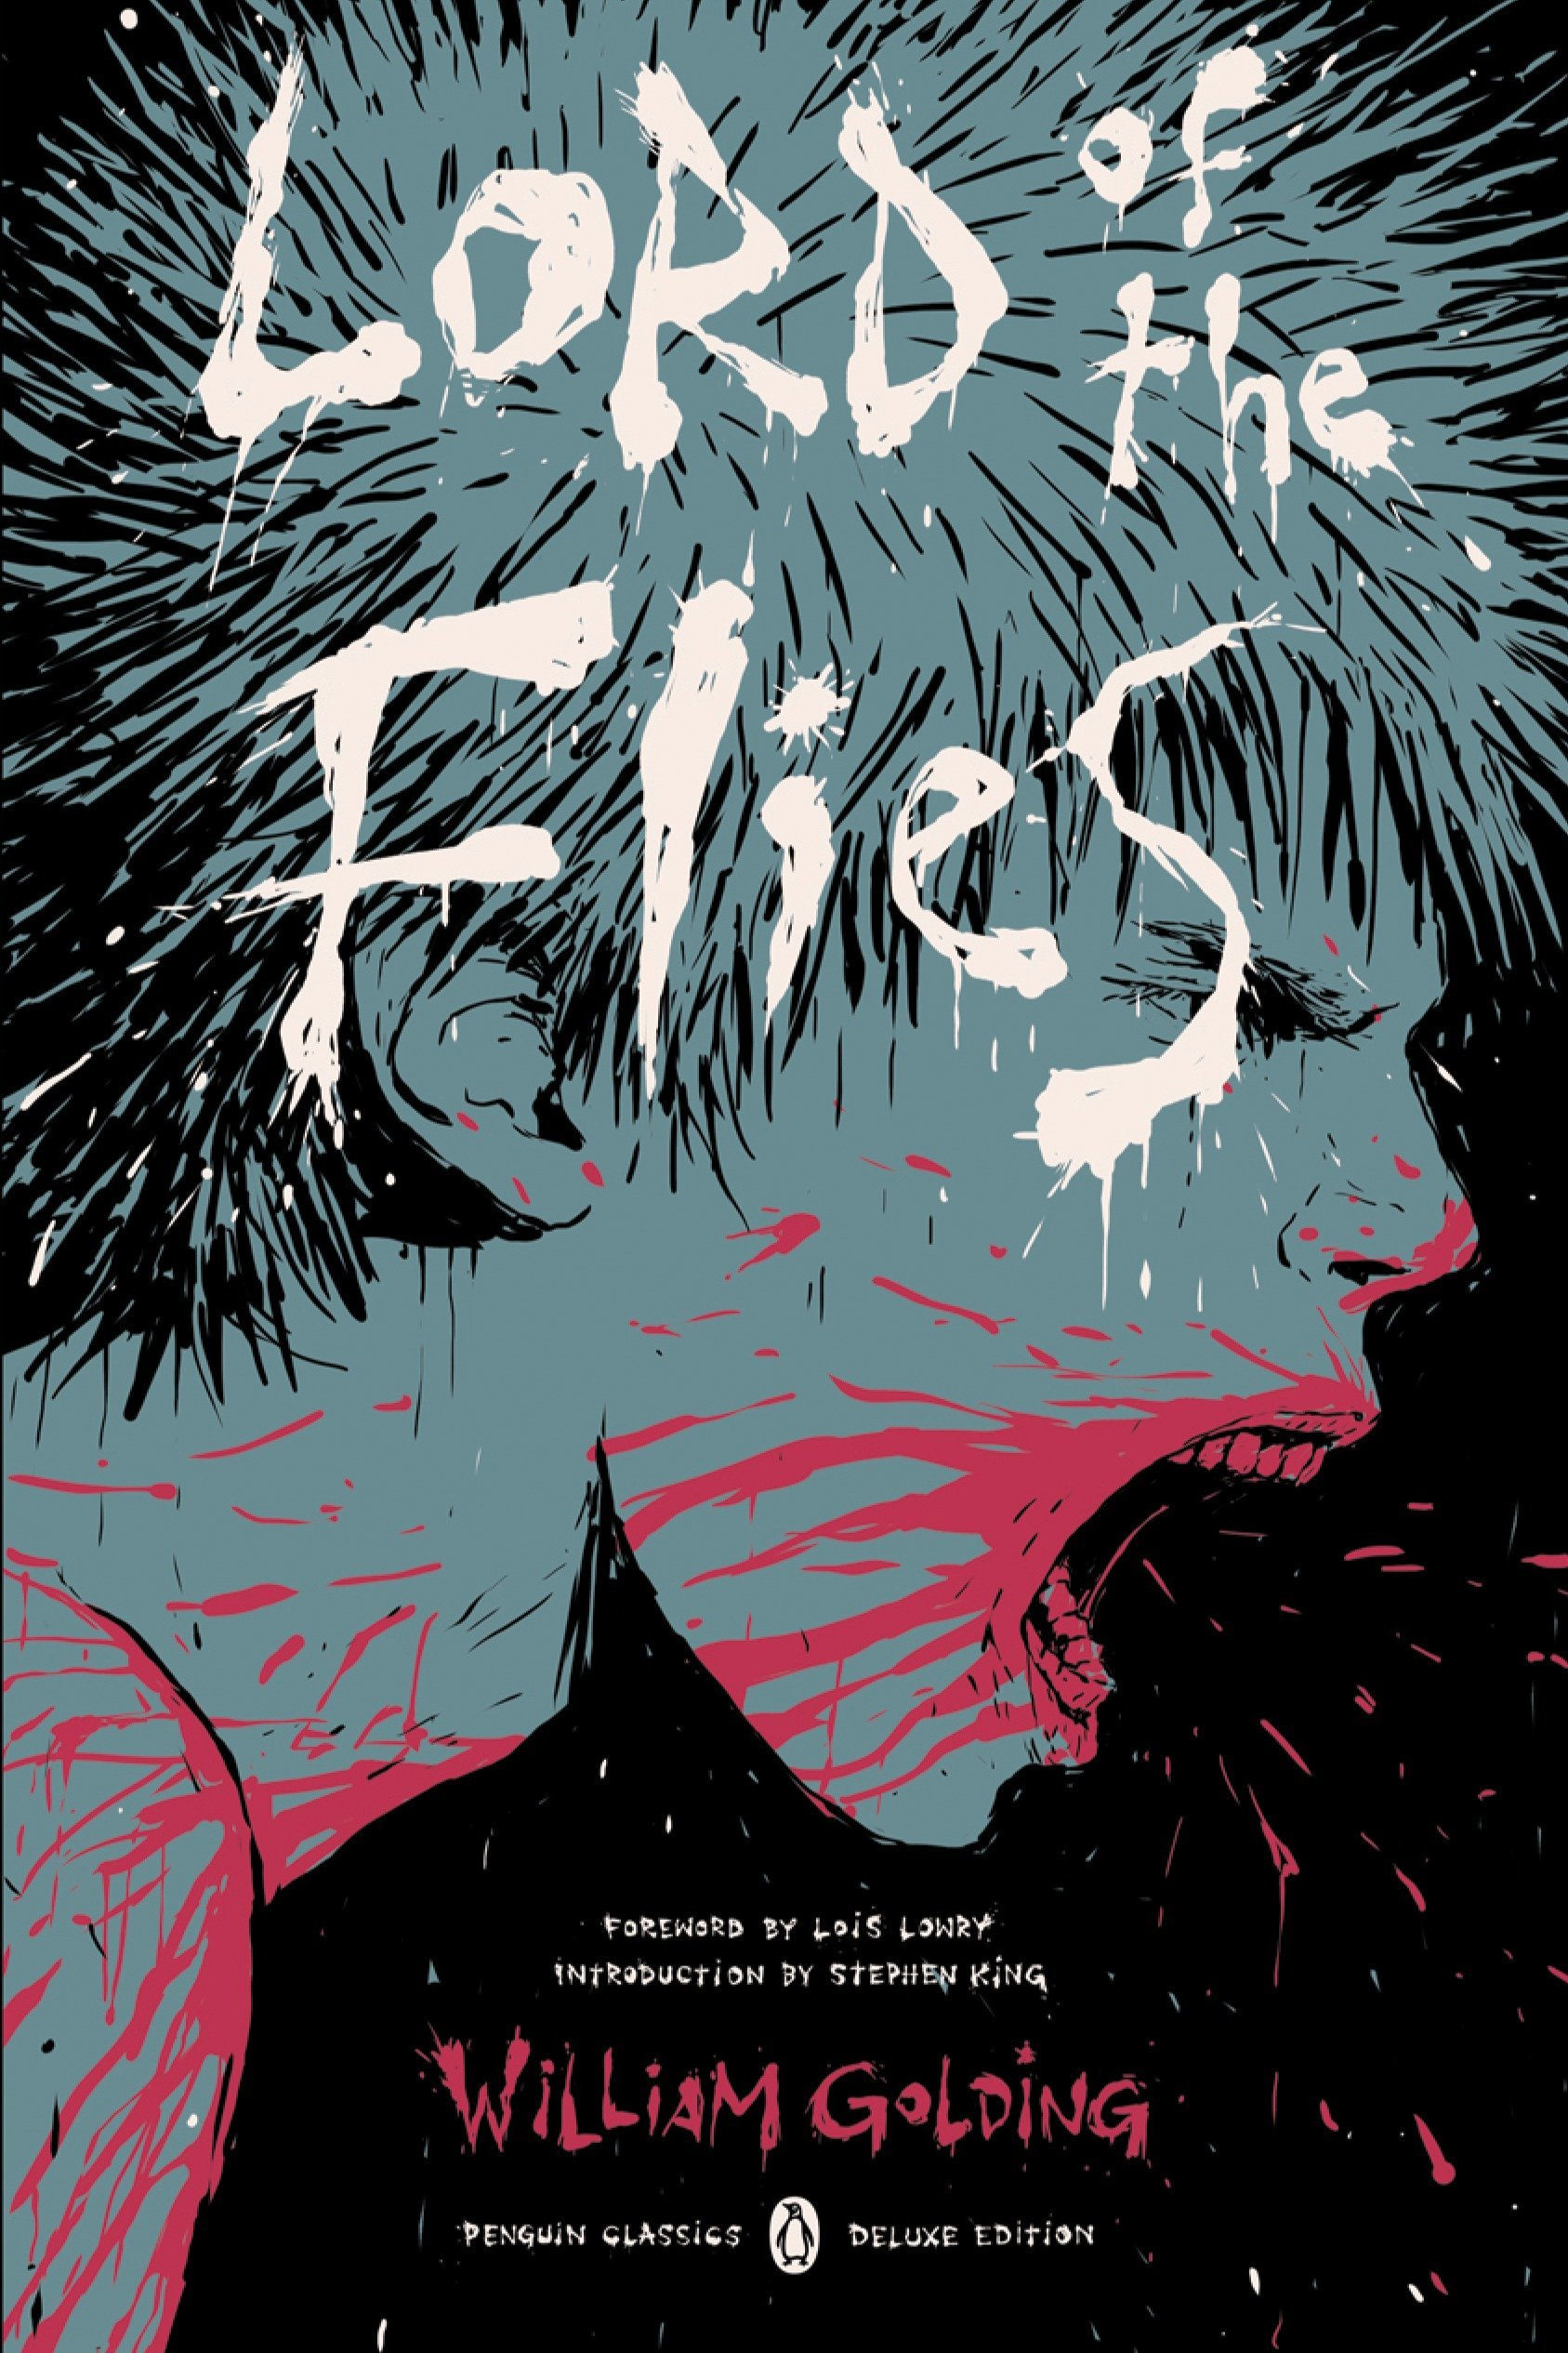 Amazon.com: Lord of the Flies: (Penguin Classics Deluxe Edition)  (9780143129400): Golding, William, King, Stephen, Lowry, Lois, Forster, E.  M., Buehler, Jennifer: Books